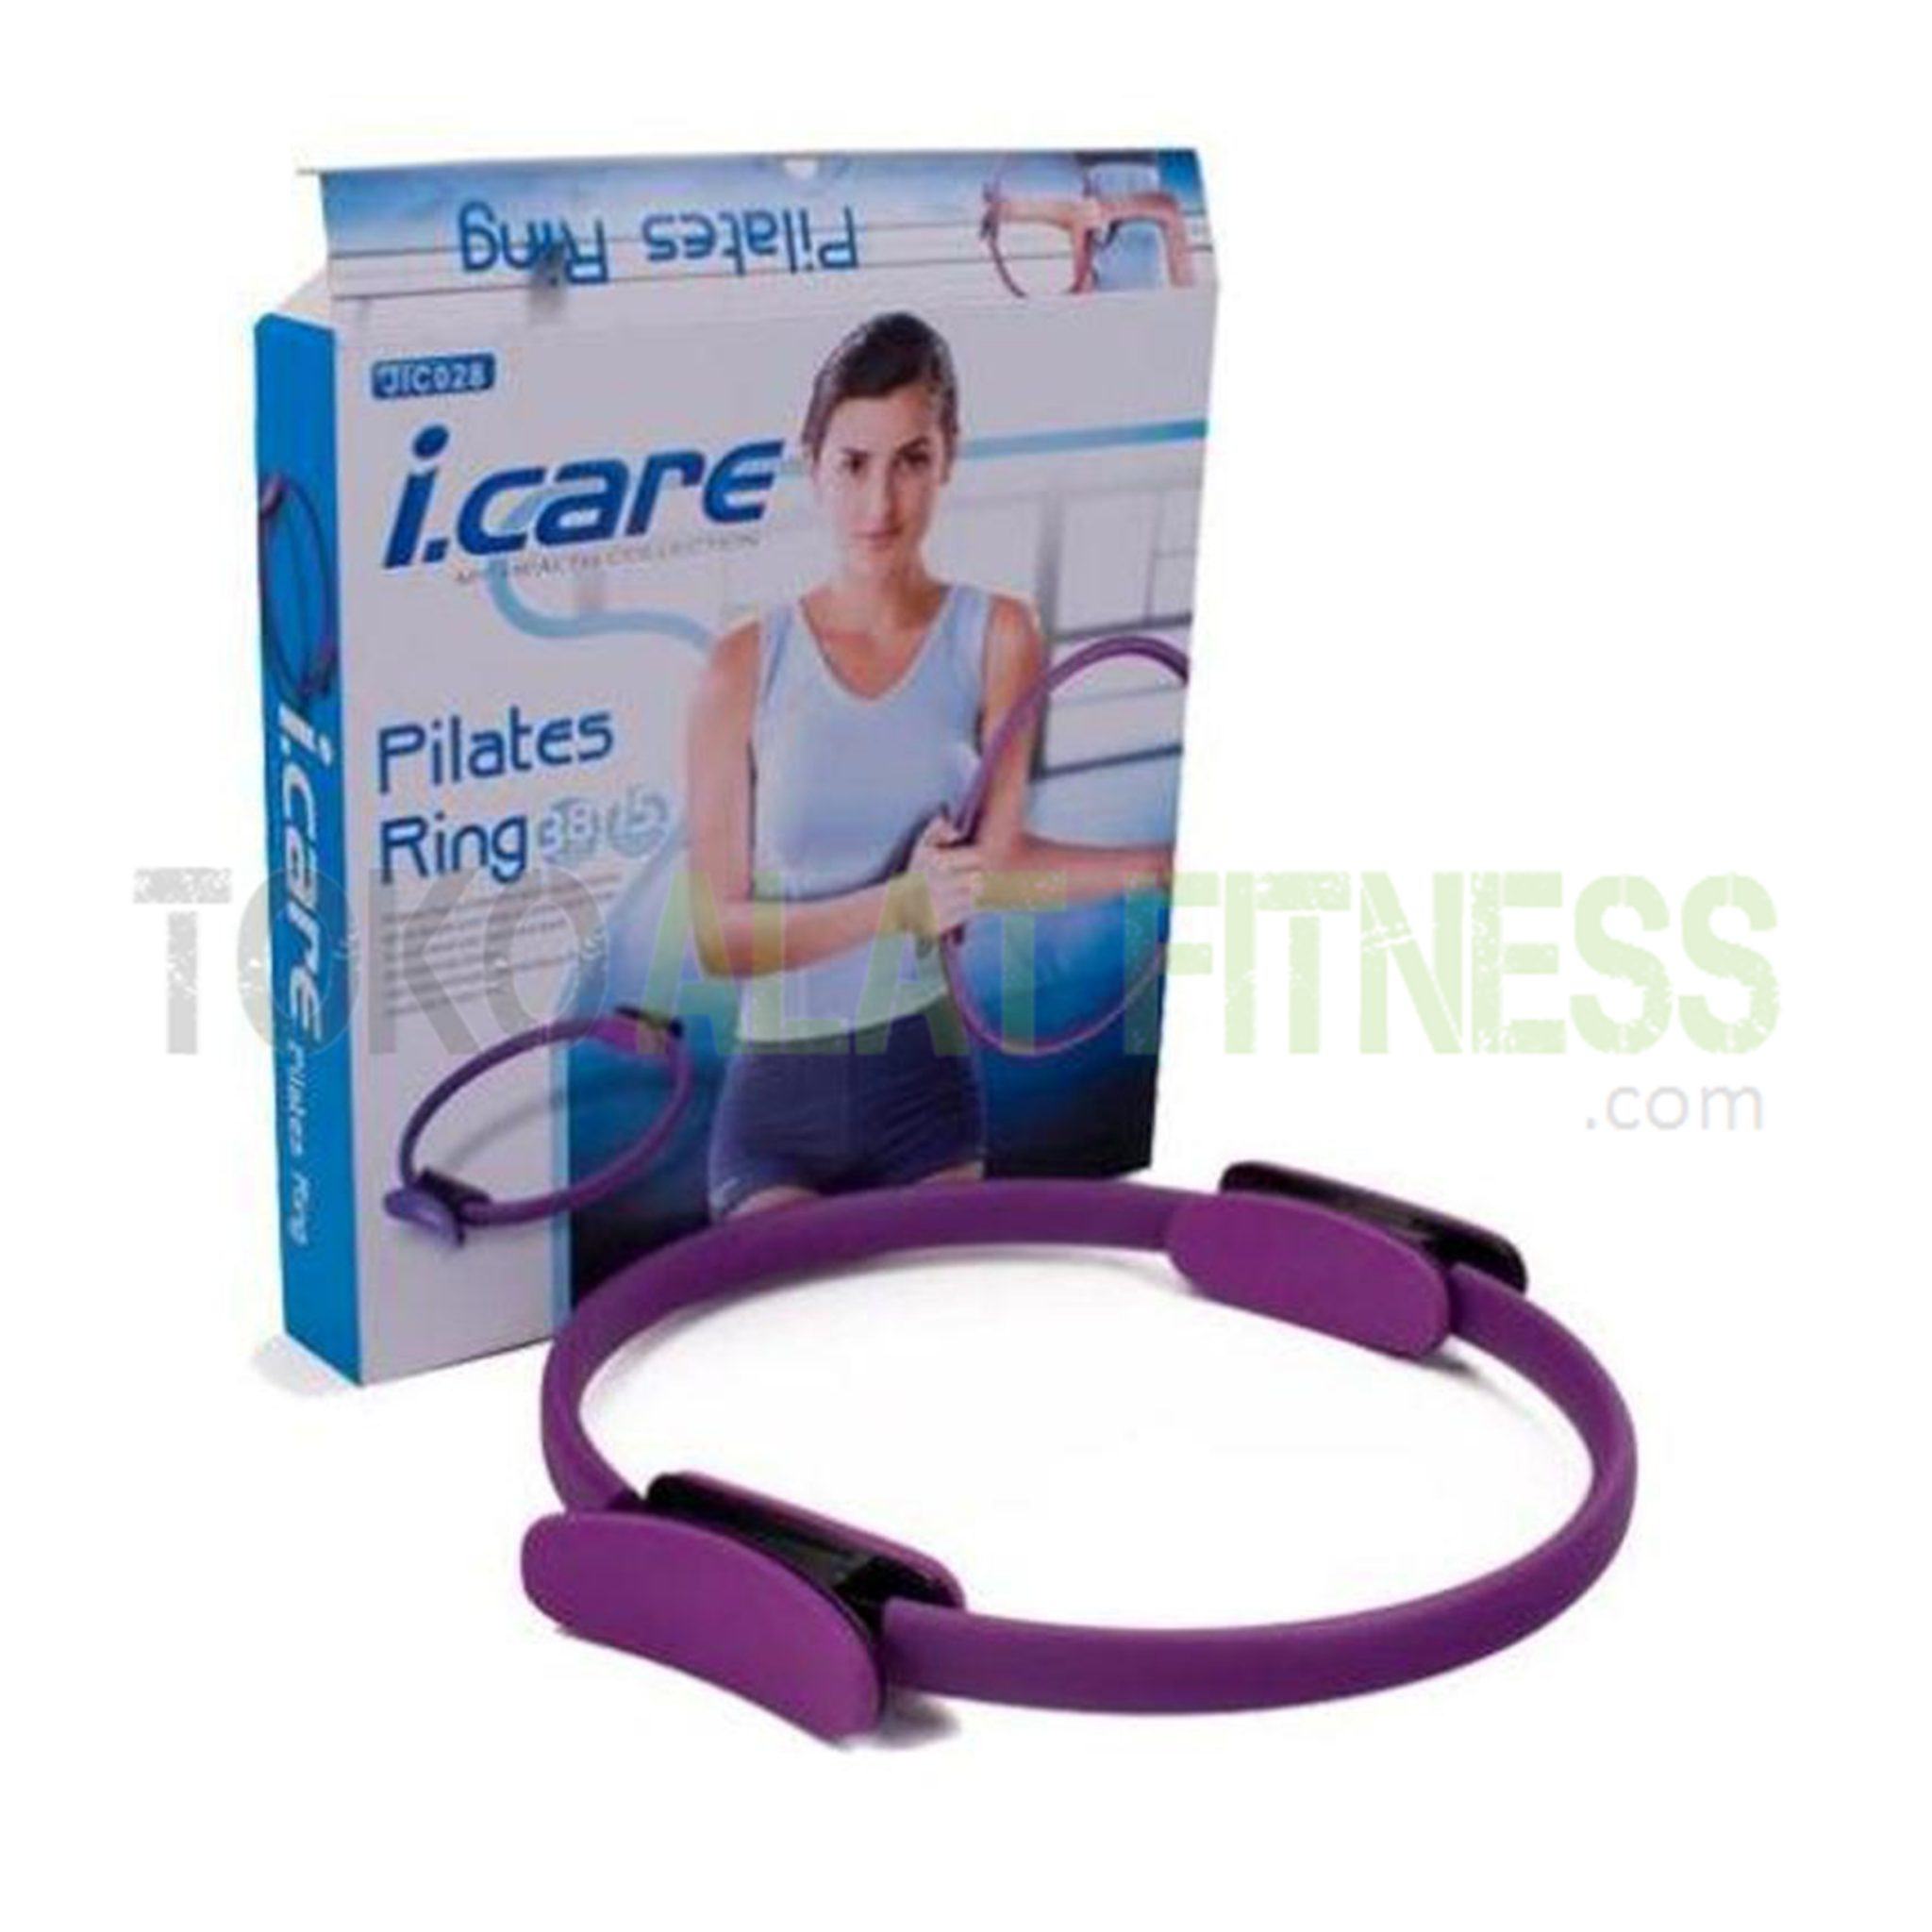 Pilates Ring I Care 1123 wtr - Pilates Ring I Care